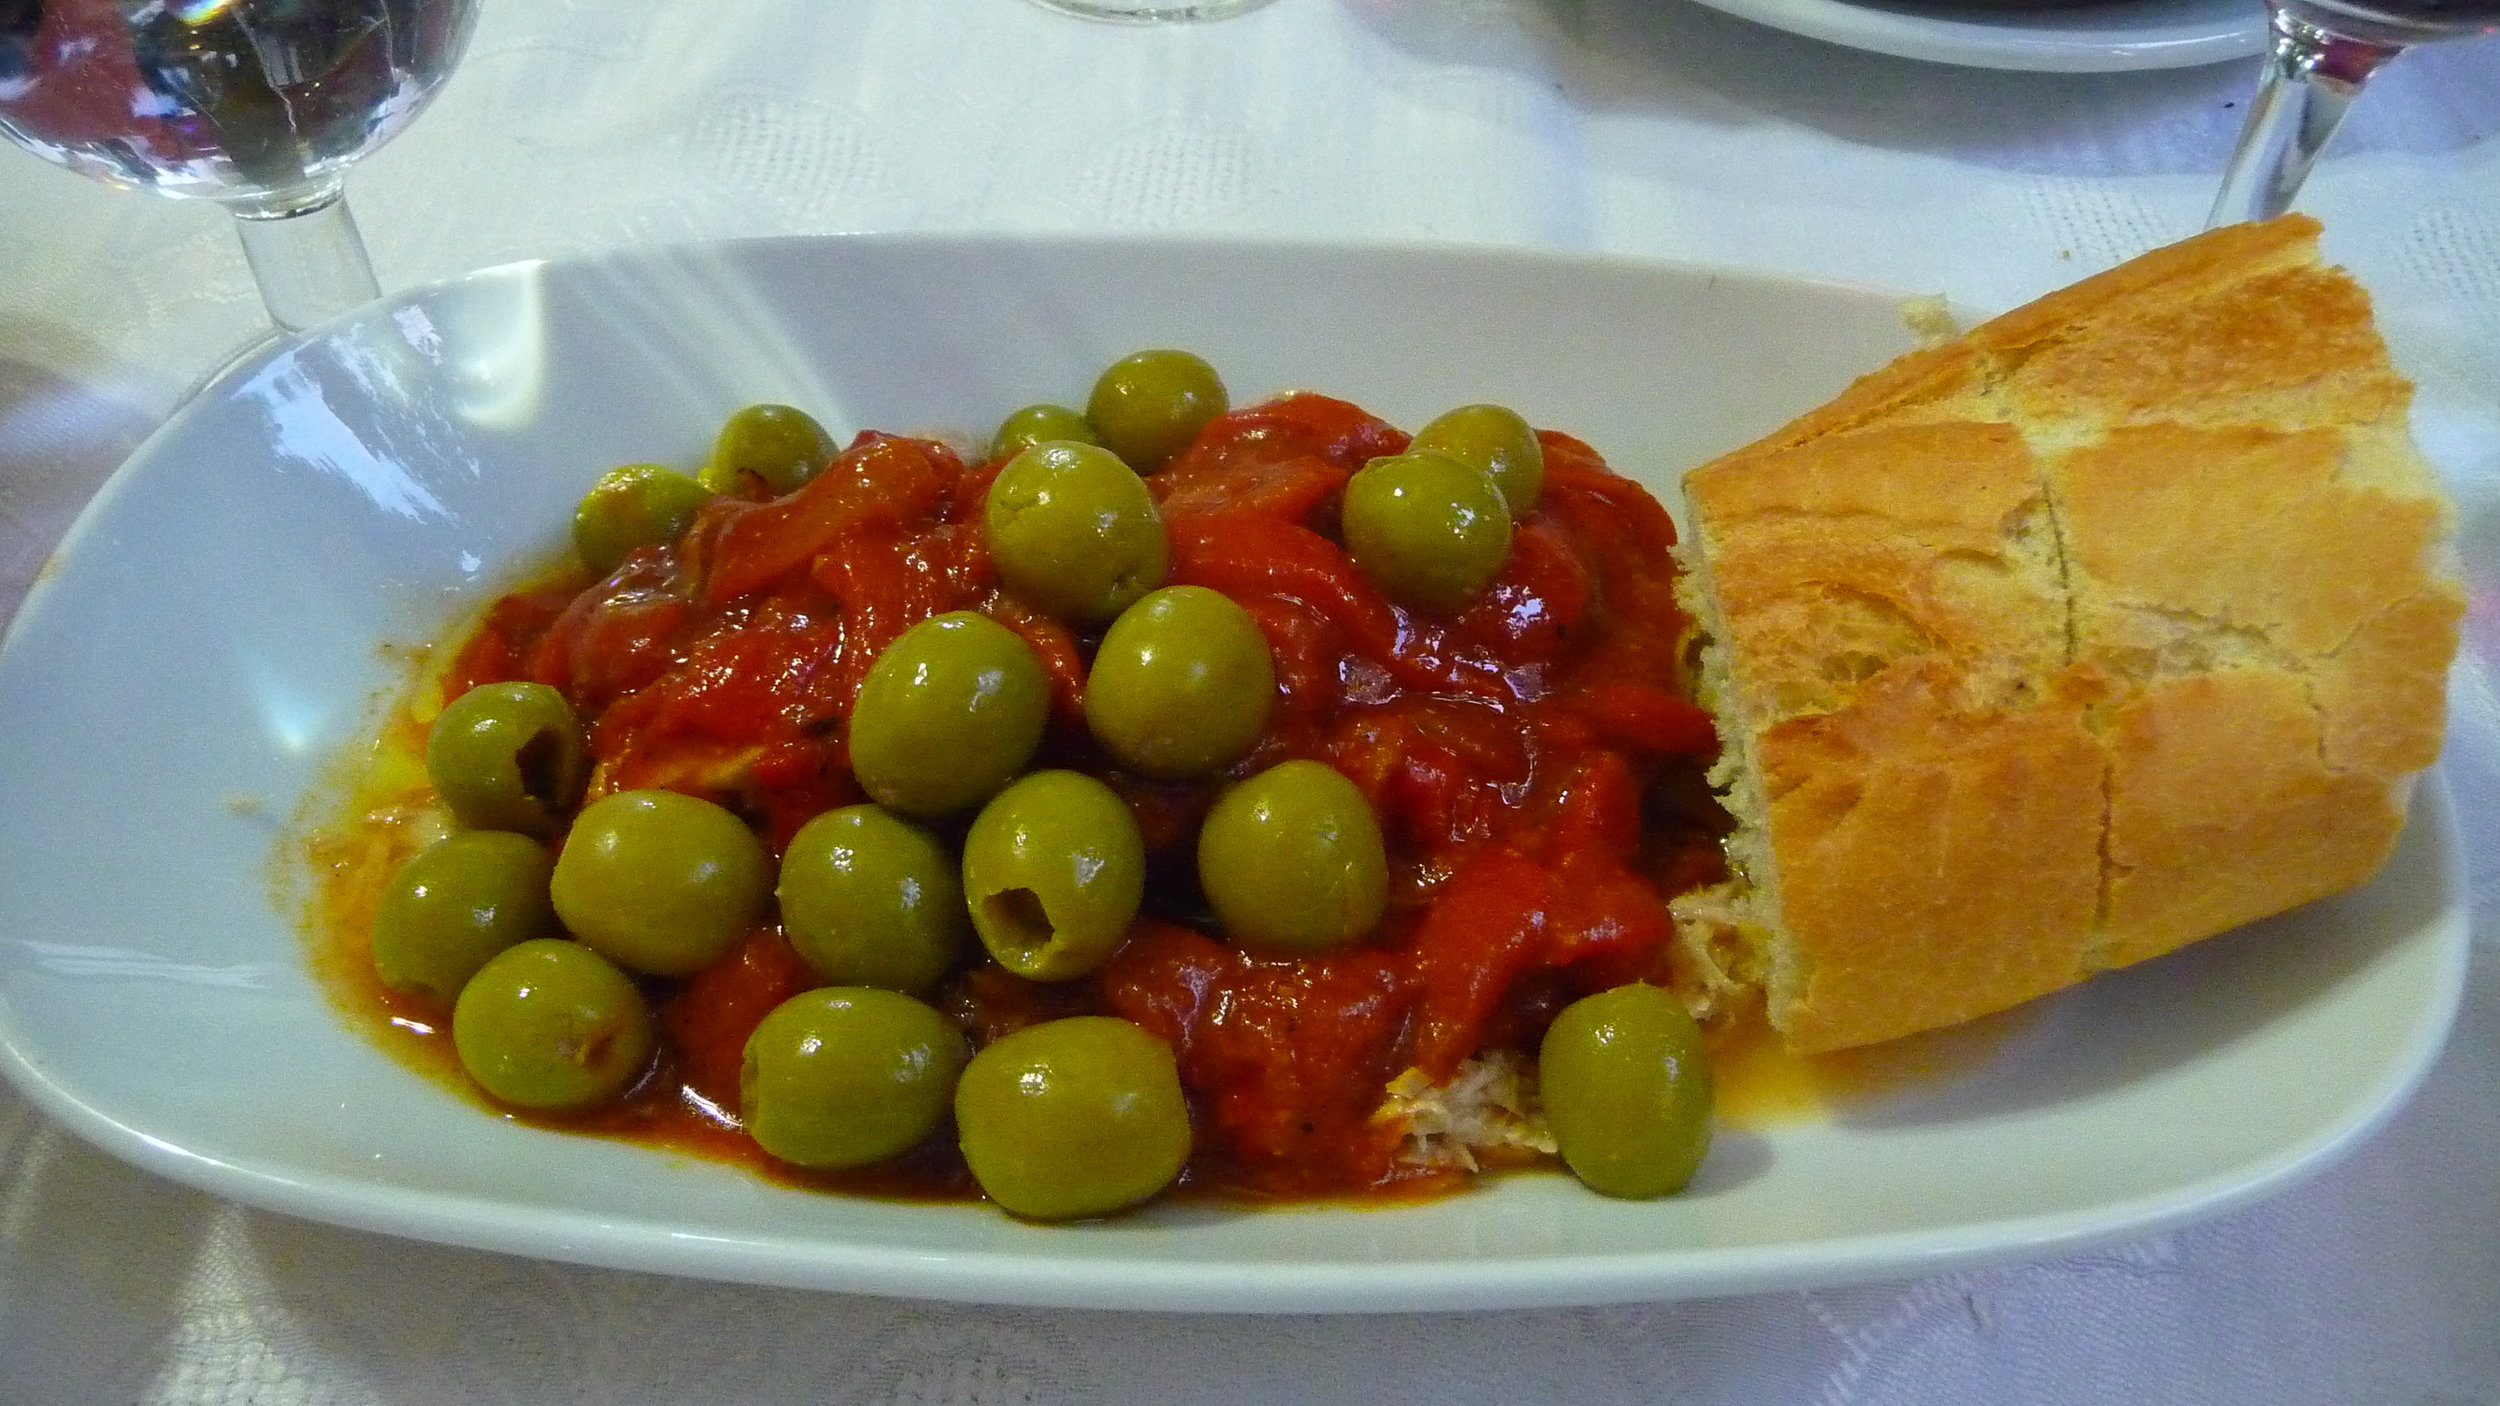 My dinner-ensalada de bonito-tuna, peppers, tomatoes and olives with gazpacho which is not pictured.